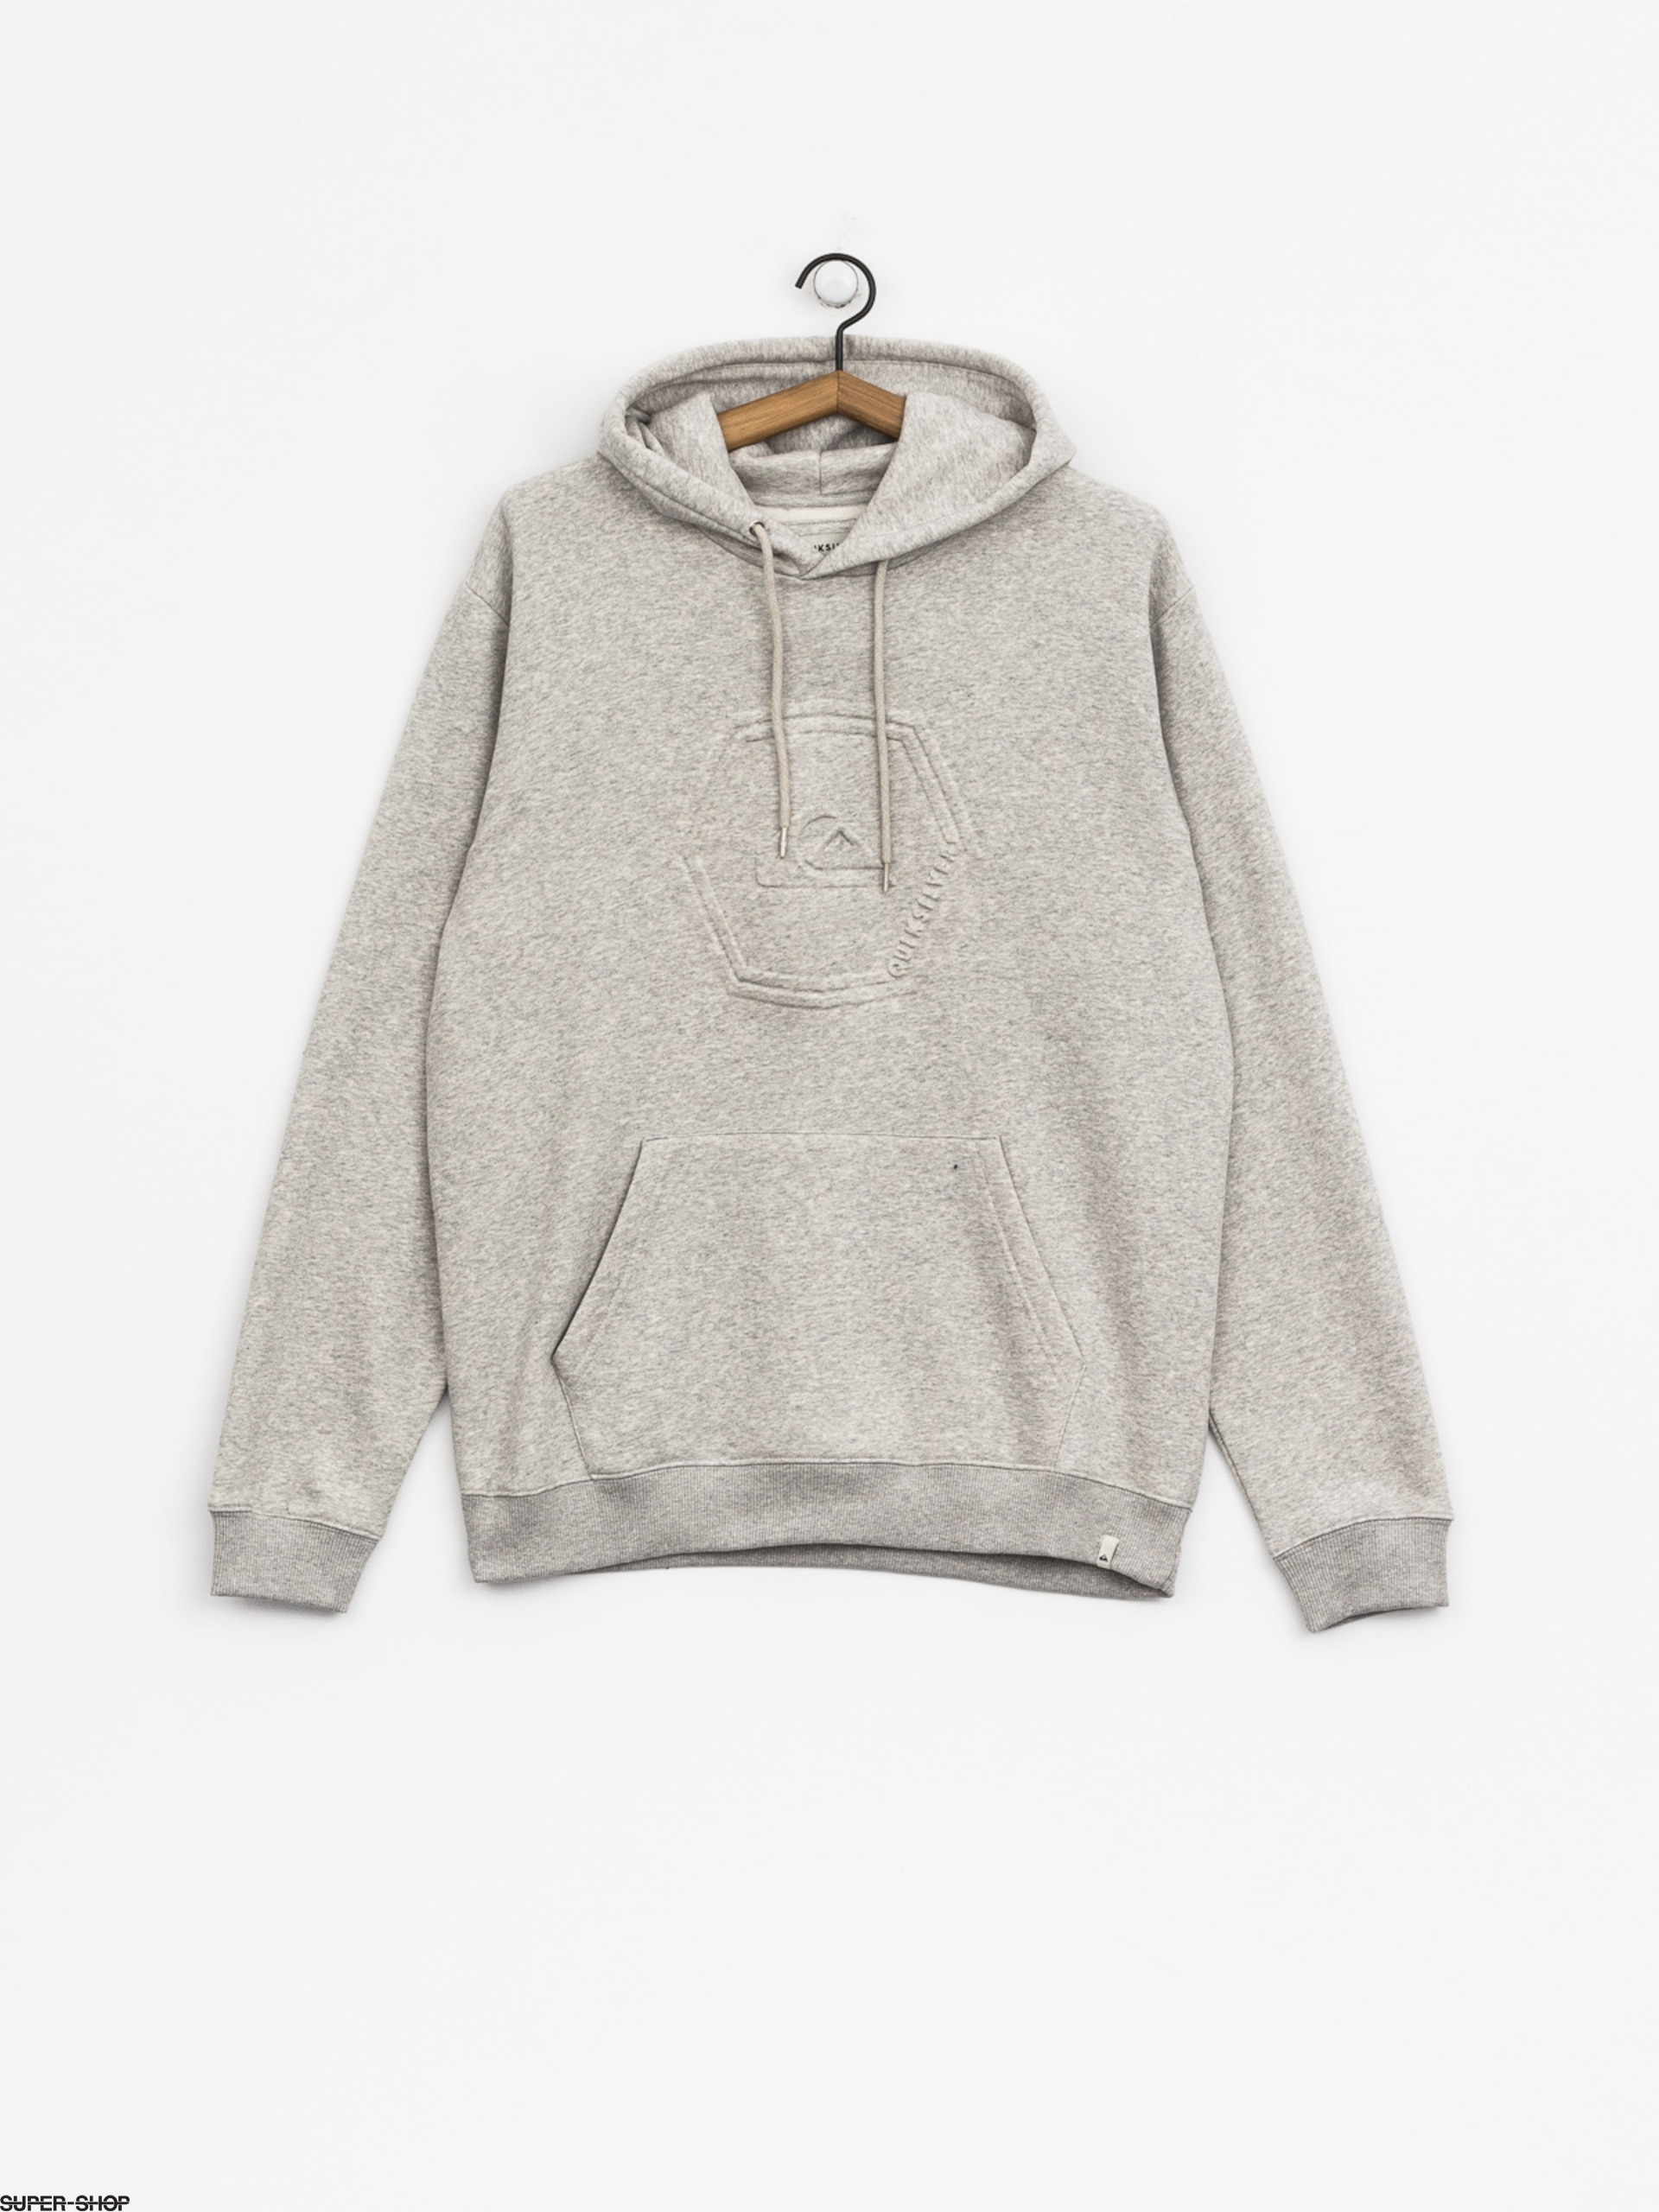 Quiksilver Swell Emboss Pullover Hoody